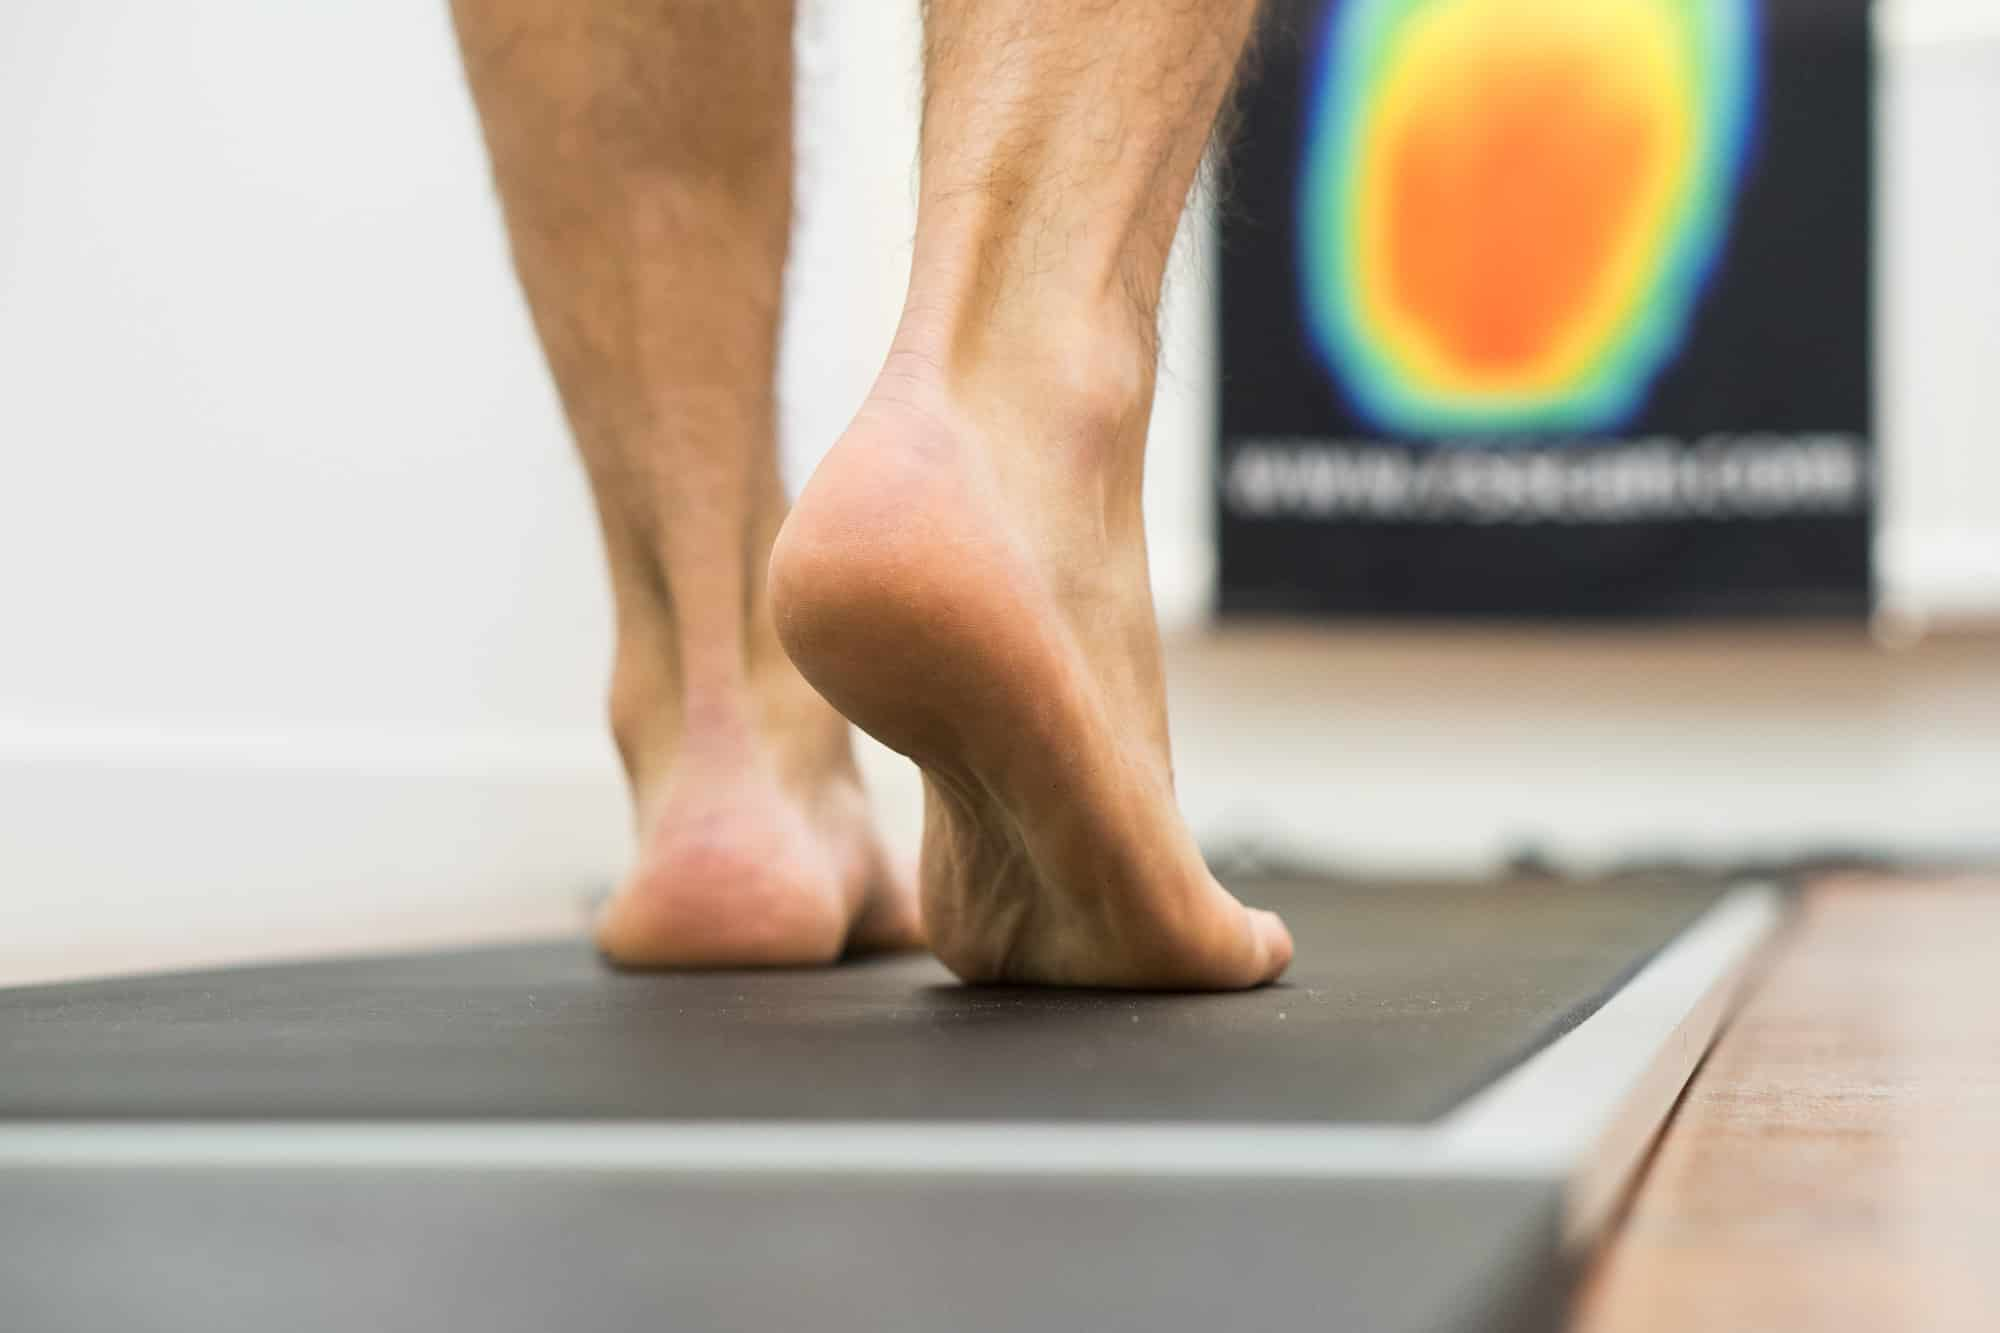 RS Footscan